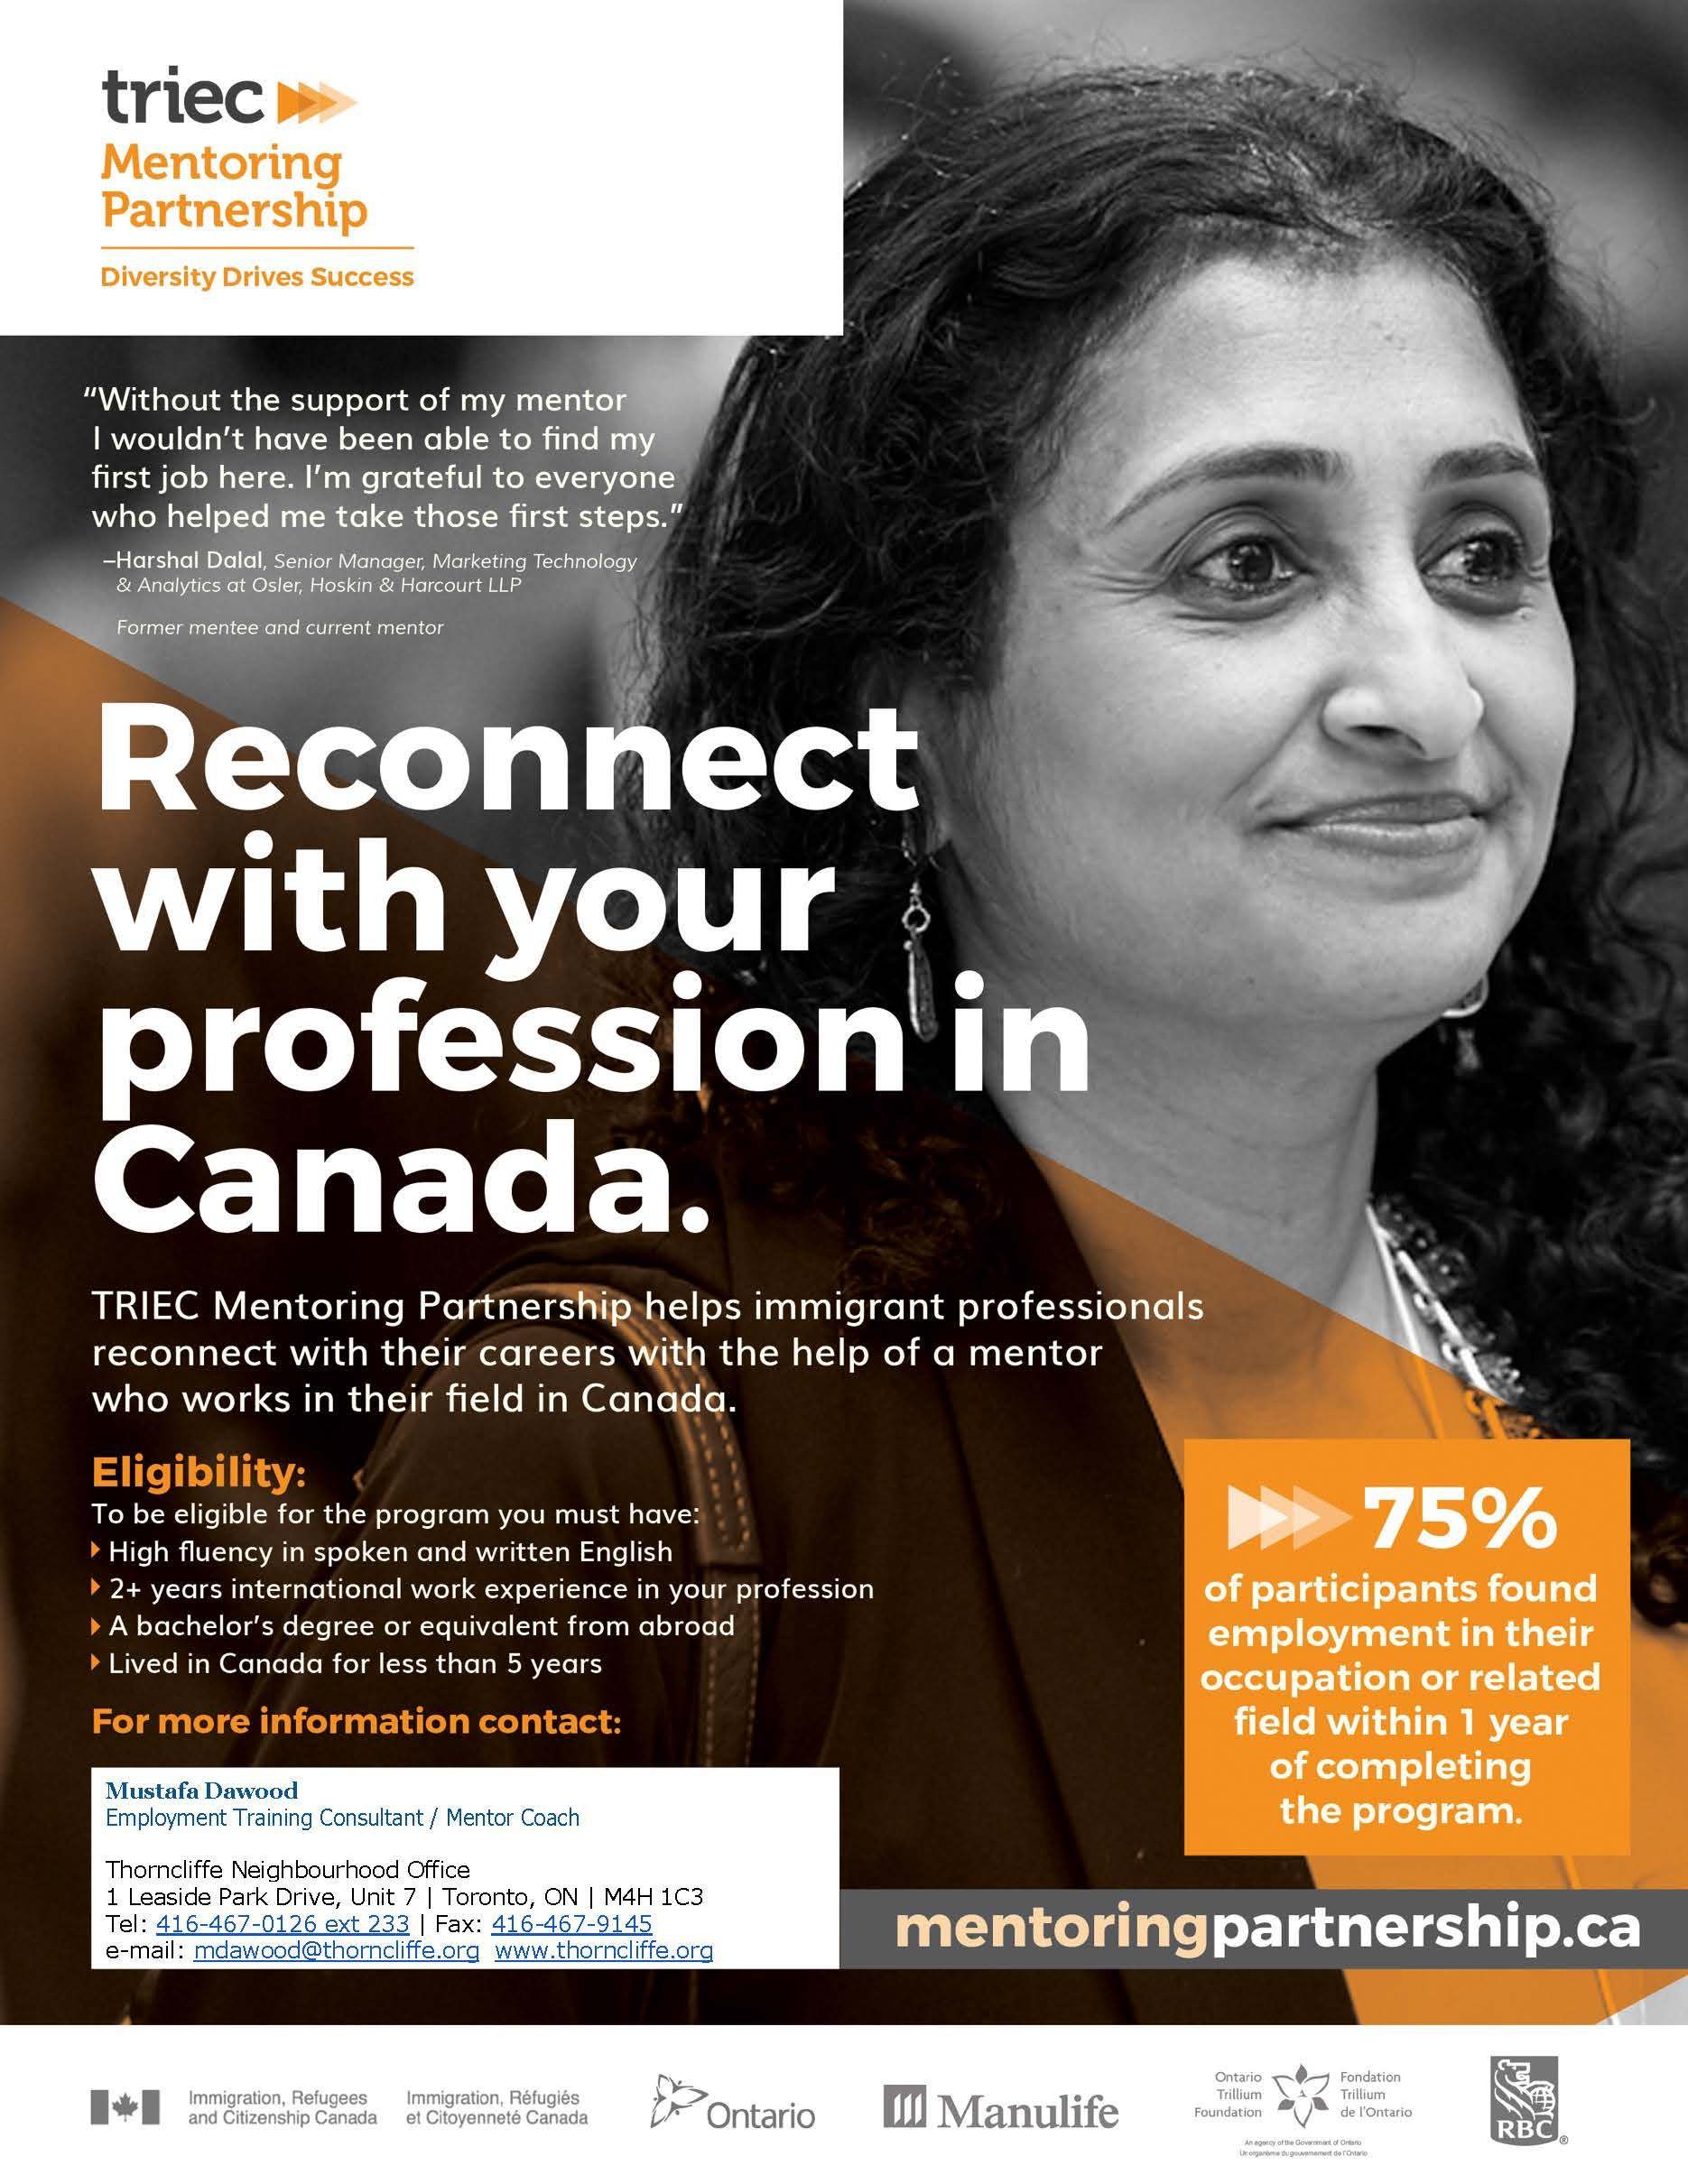 http://www.toronto-charities.ca/wp-content/uploads/2017/10/October-2017-TRIEC-Mentoring-Partnership-Flyer.jpg